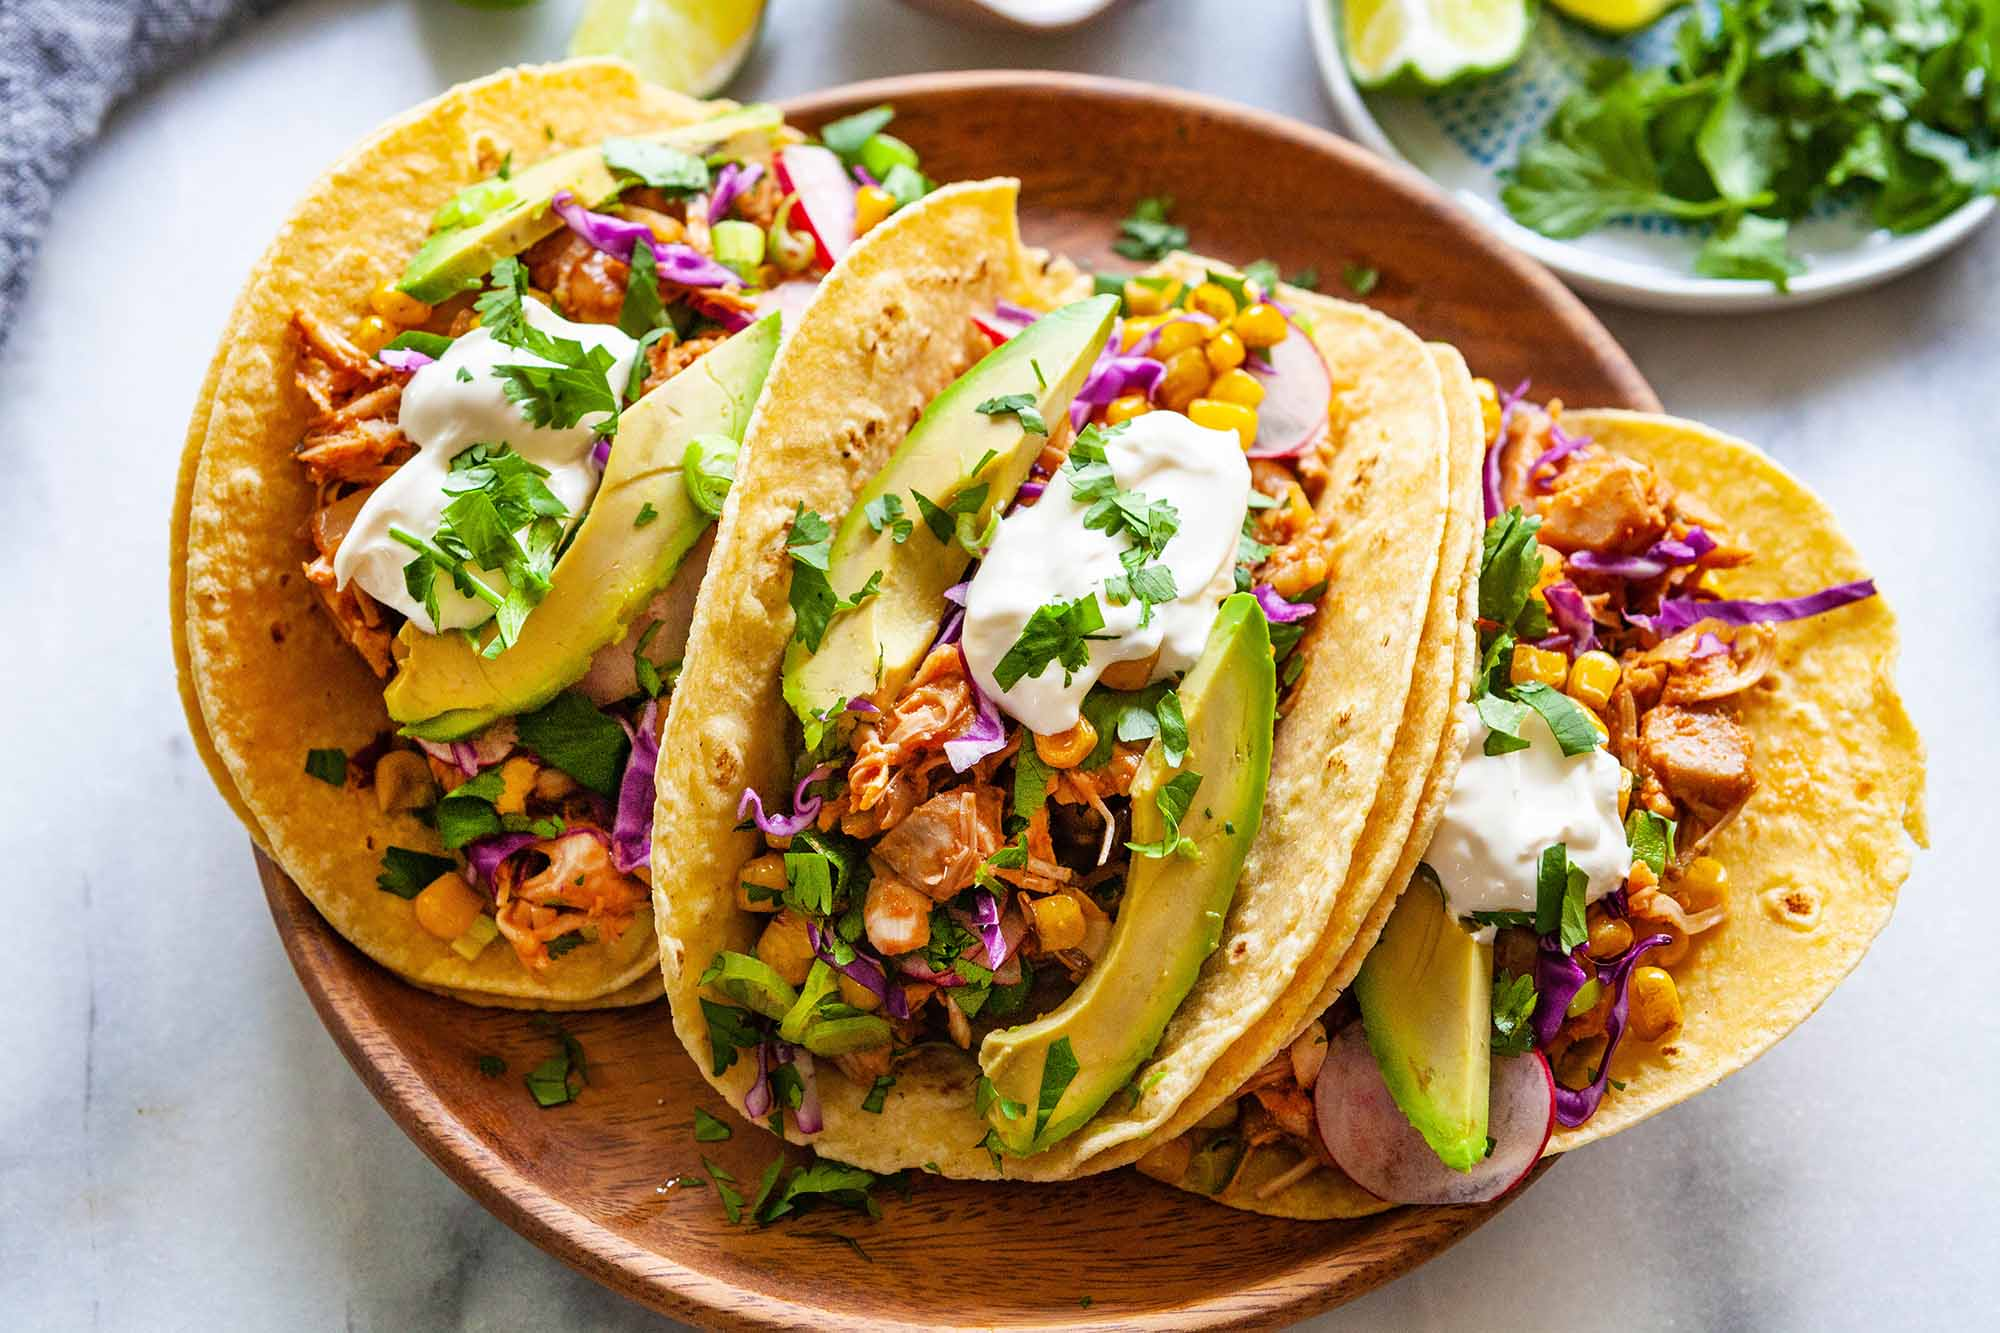 Tacotopia: The Land of Tacos & Beer